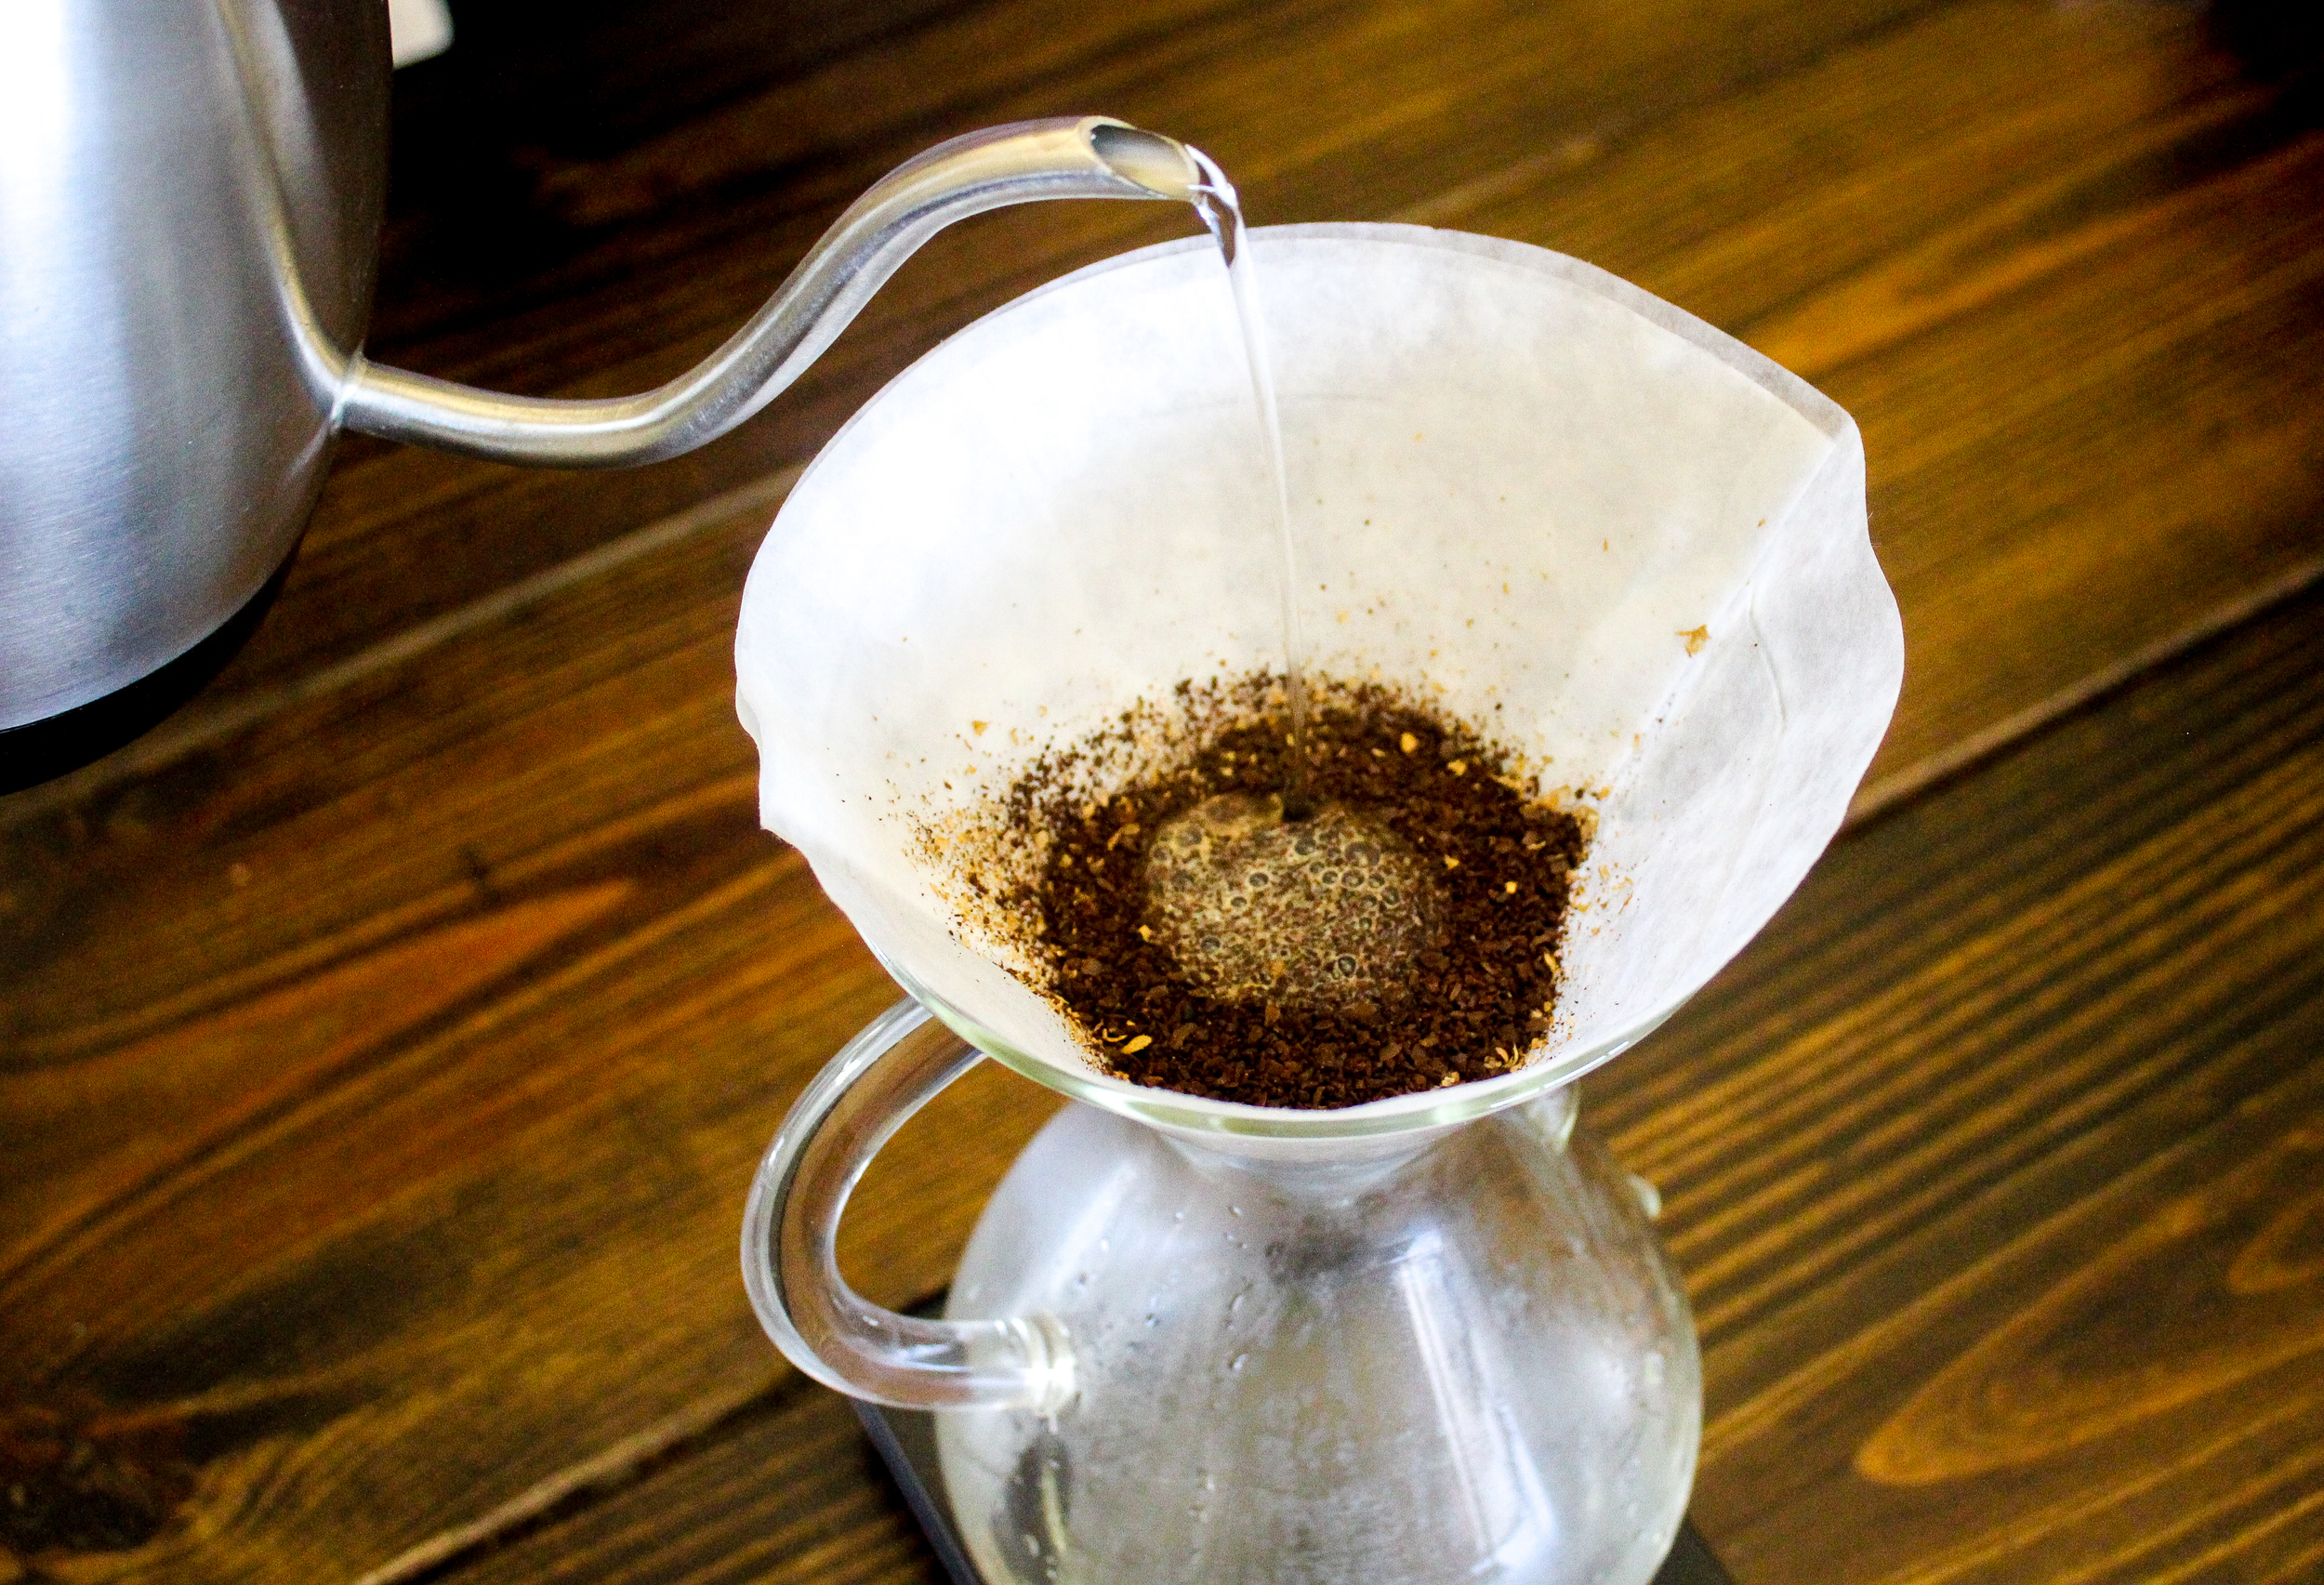 3. Place Chemex on scale and zero out.Begin by pouring a small amount of water (3-4 tablespoons) on the grounds. This is the bloom phase. A gooseneck kettle makes the pouring process much easier. Wait 30-45 seconds before continuing your pour.